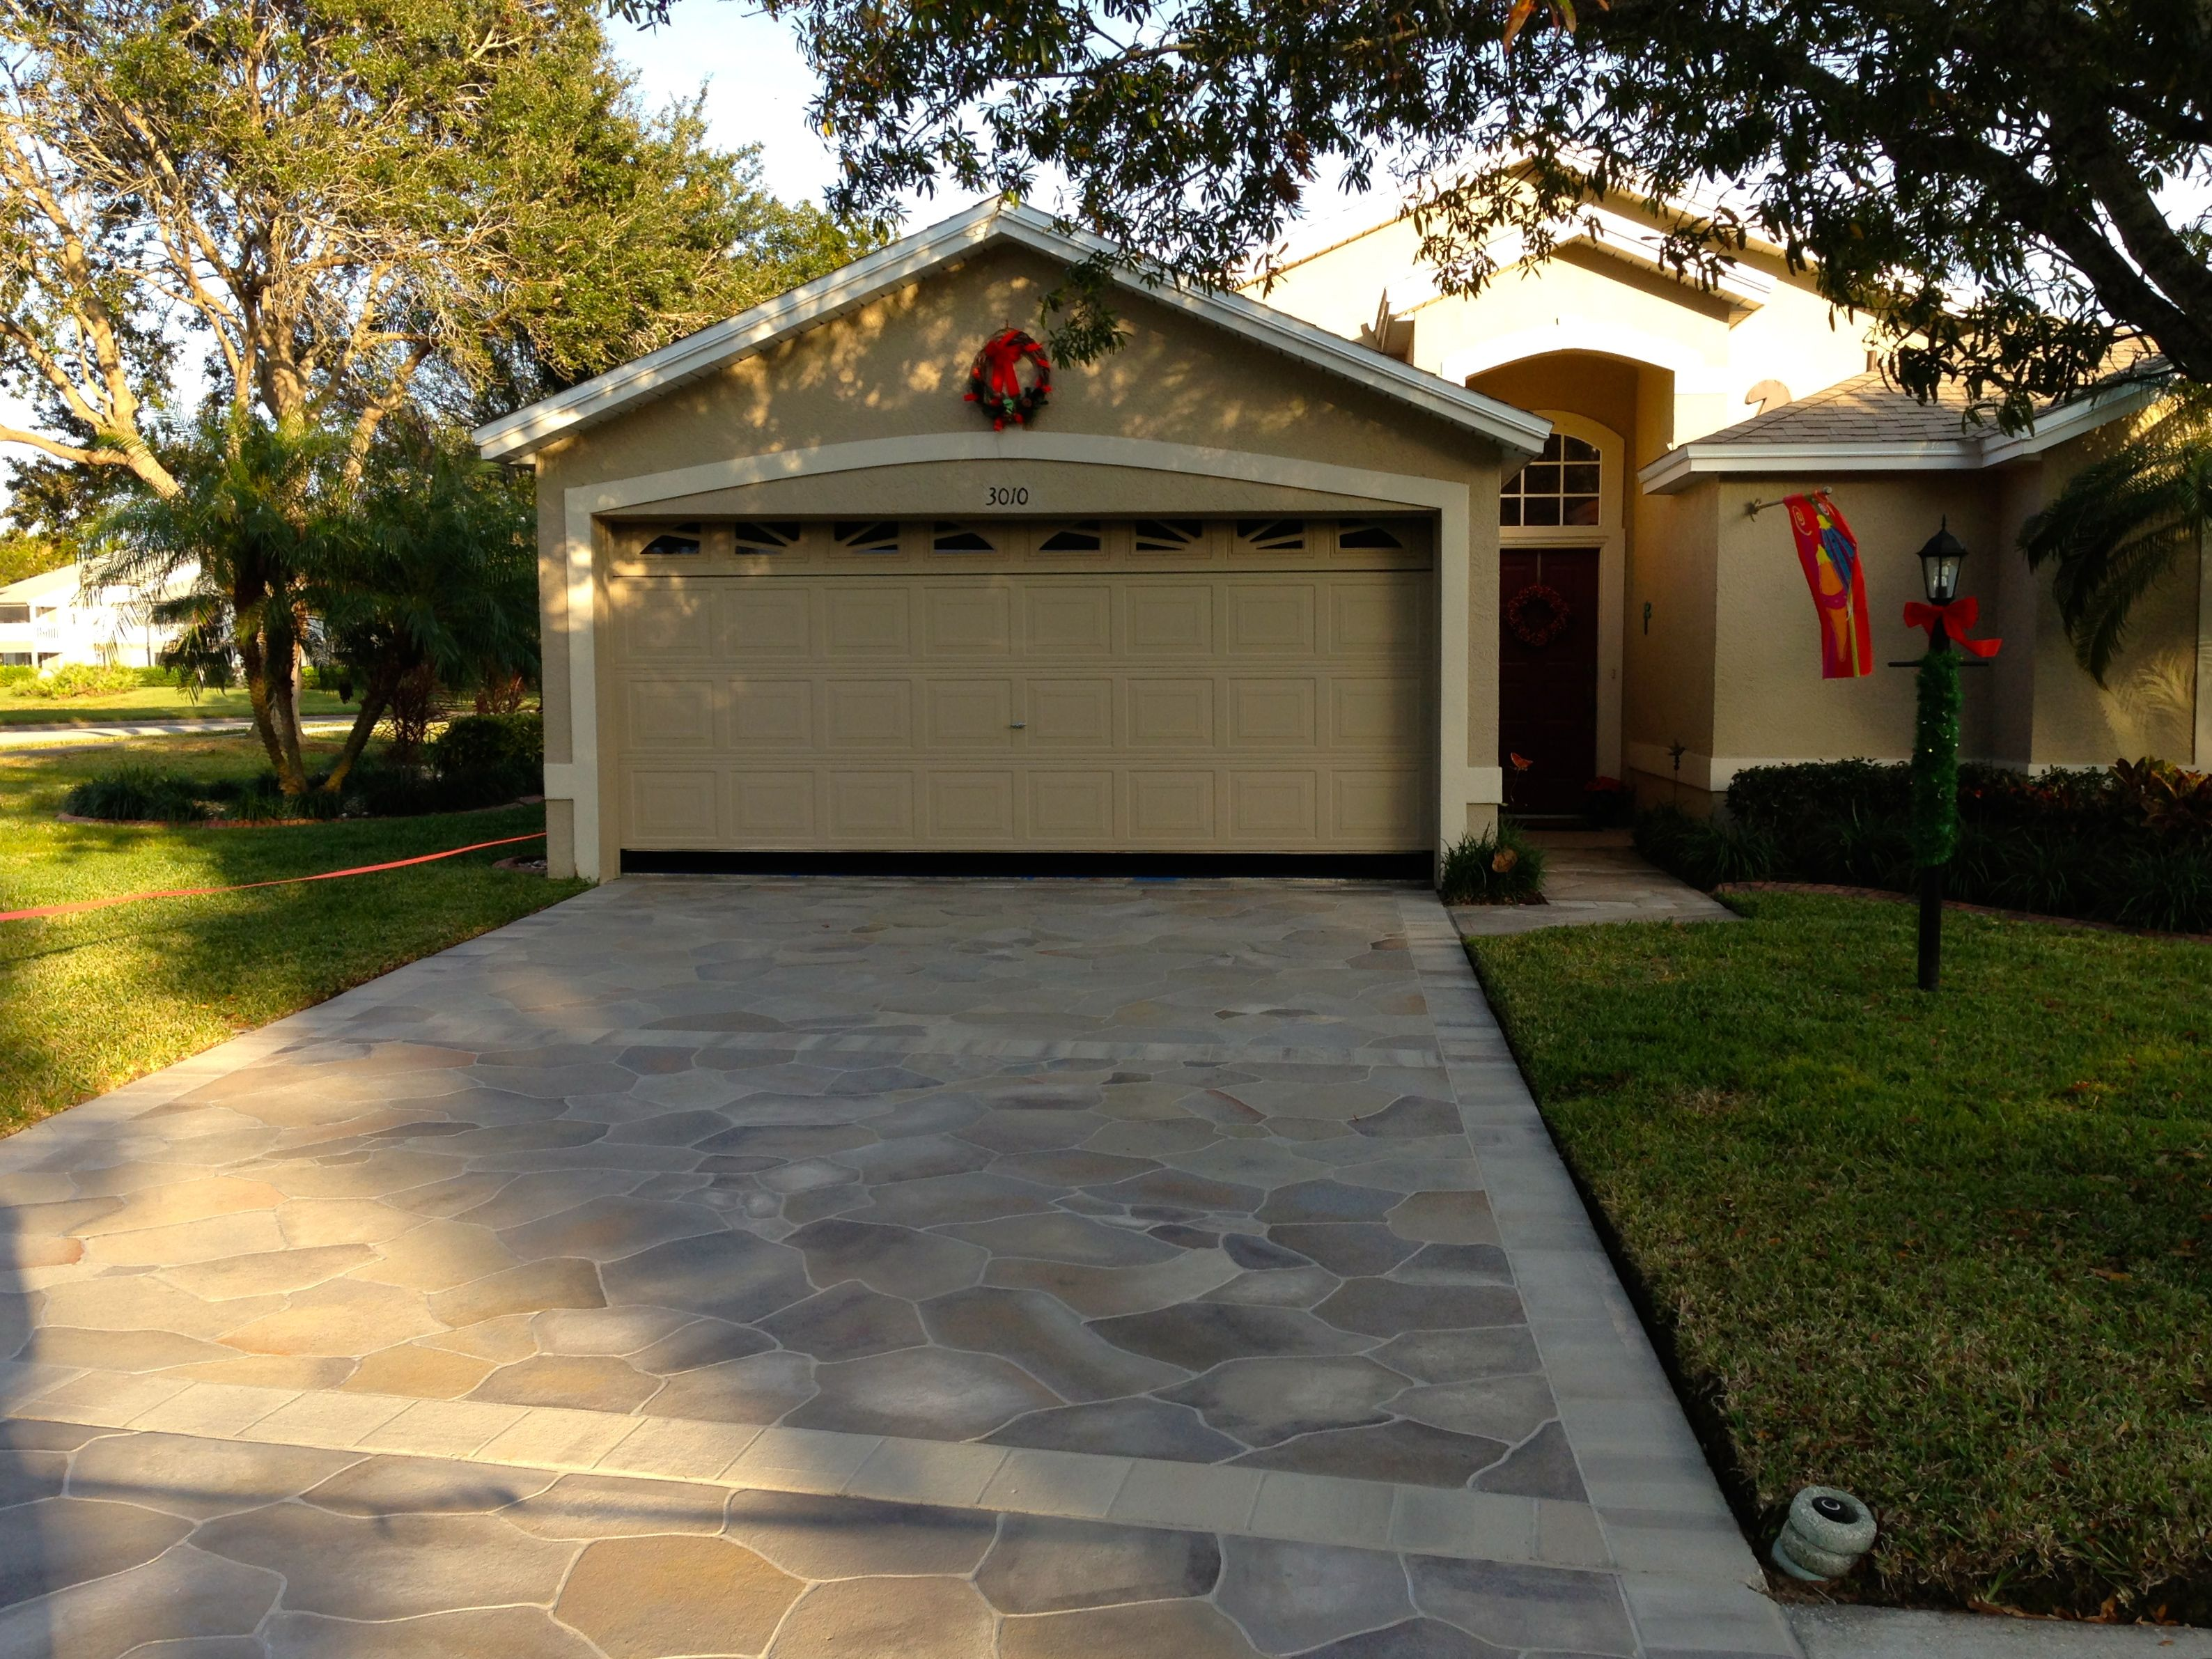 Concrete Driveway Design Ideas driveway1 site concretenetworkcom Painted Driveways The Villages Florida Concrete Designs Florida Driveway Decorating Ideas